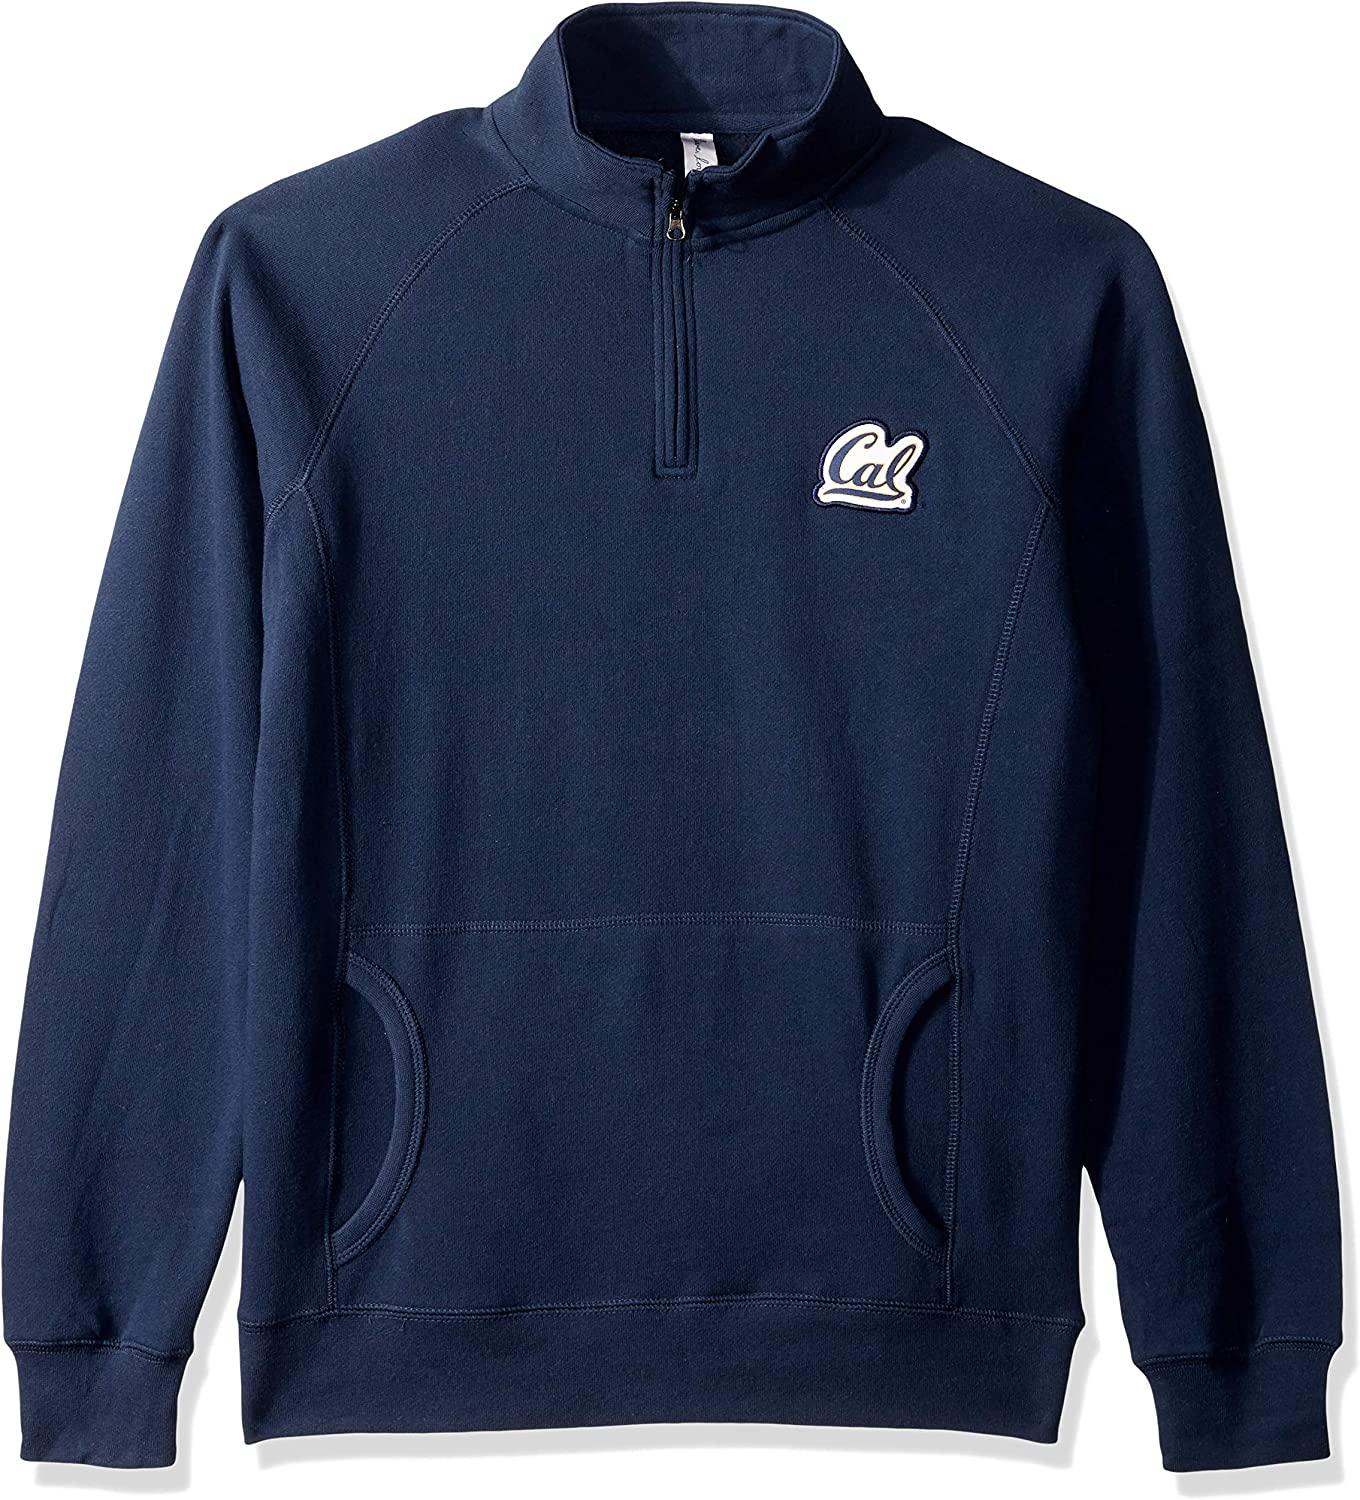 Ouray Sportswear Adult-Women Max 83% OFF Dee-lite 1 Oklahoma City Mall 4 Zip